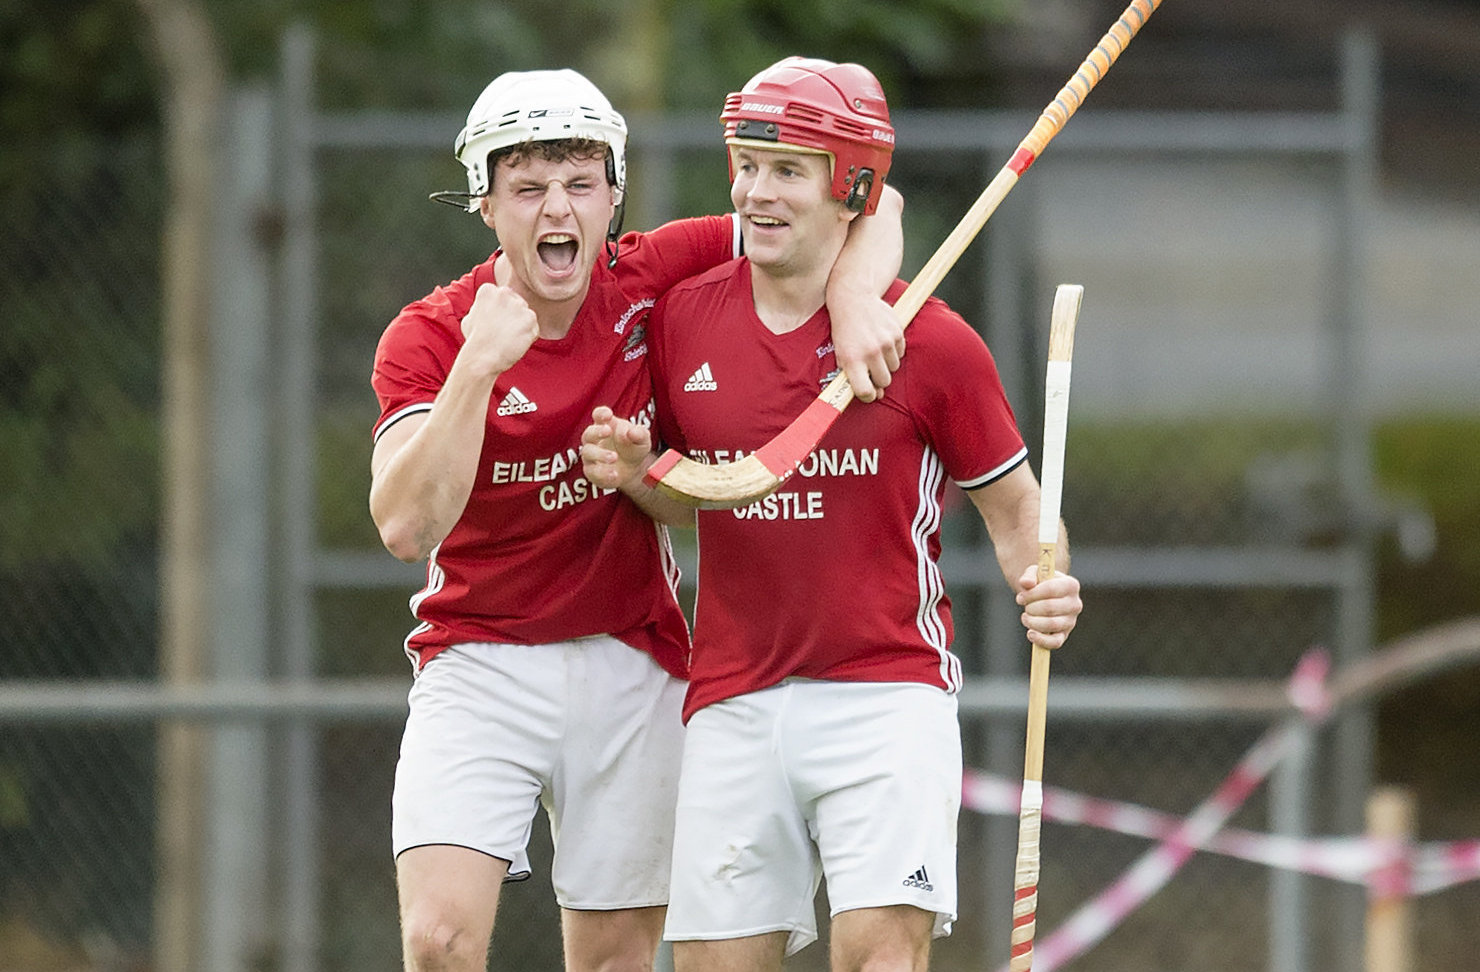 Kinlochshiel's Keith Macrae, right, celebrates his goal against Oban Camanachd with Oliver Macrae